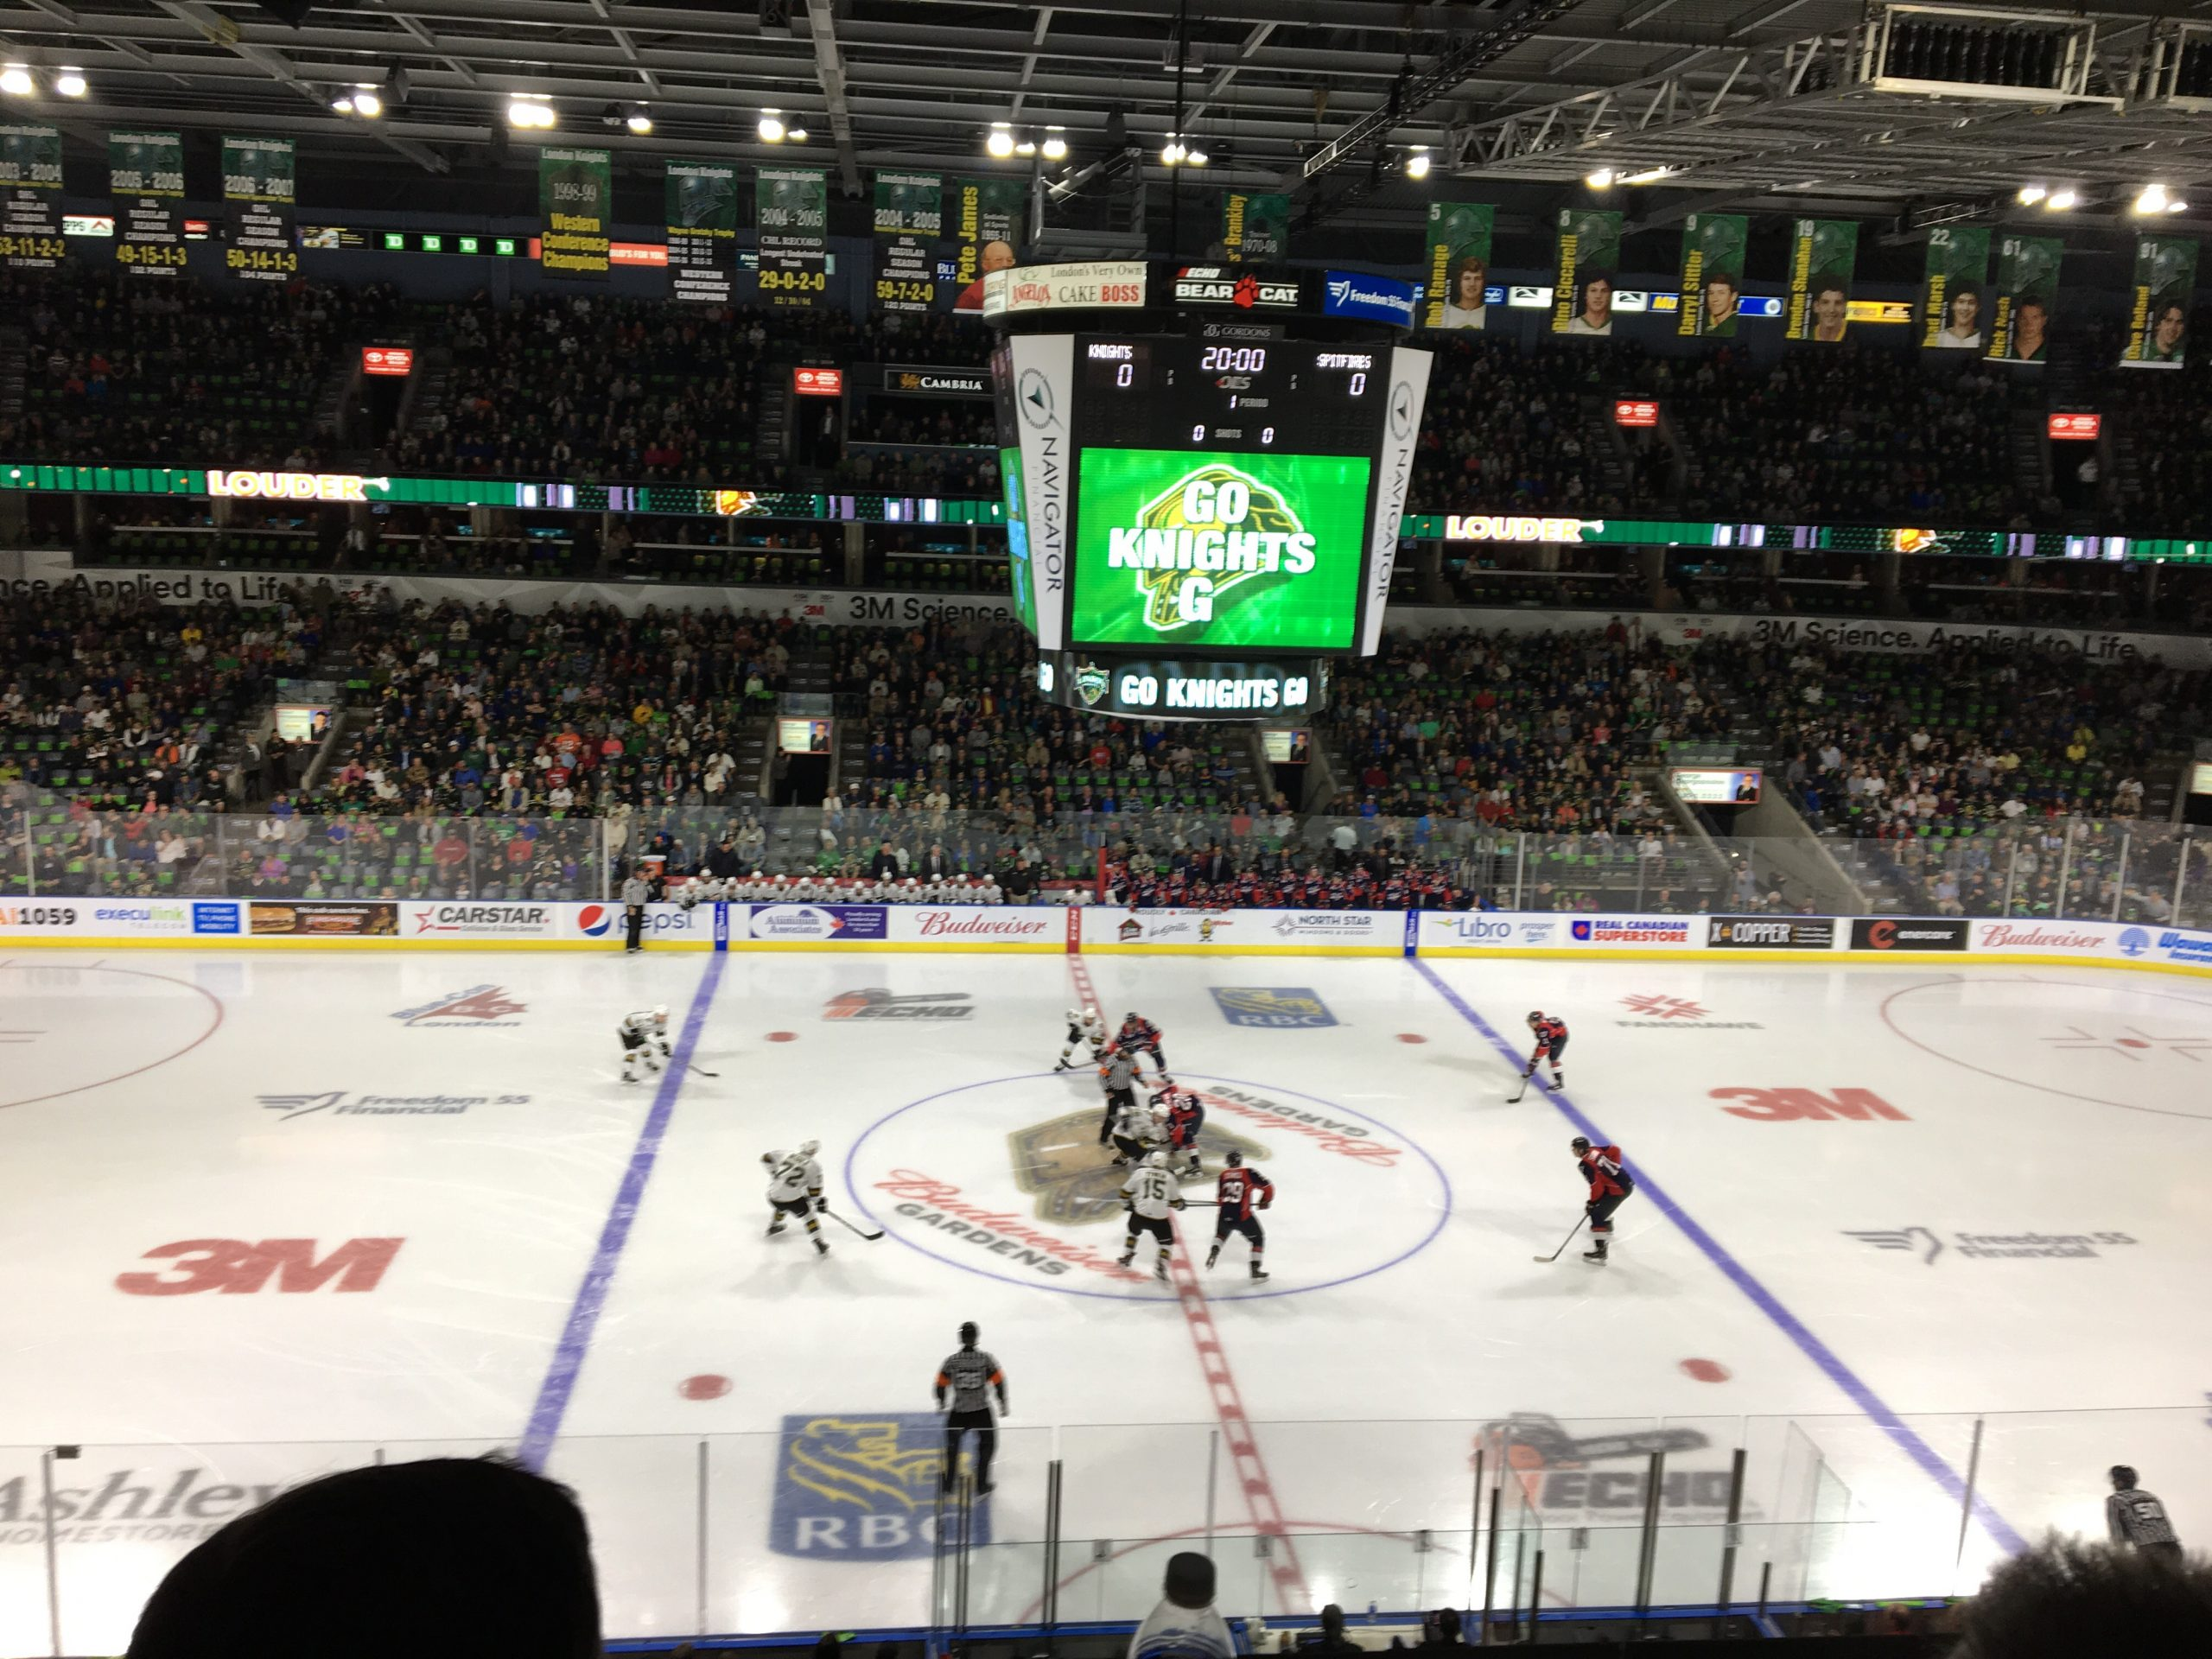 London Knights Dominate in their Home Opener